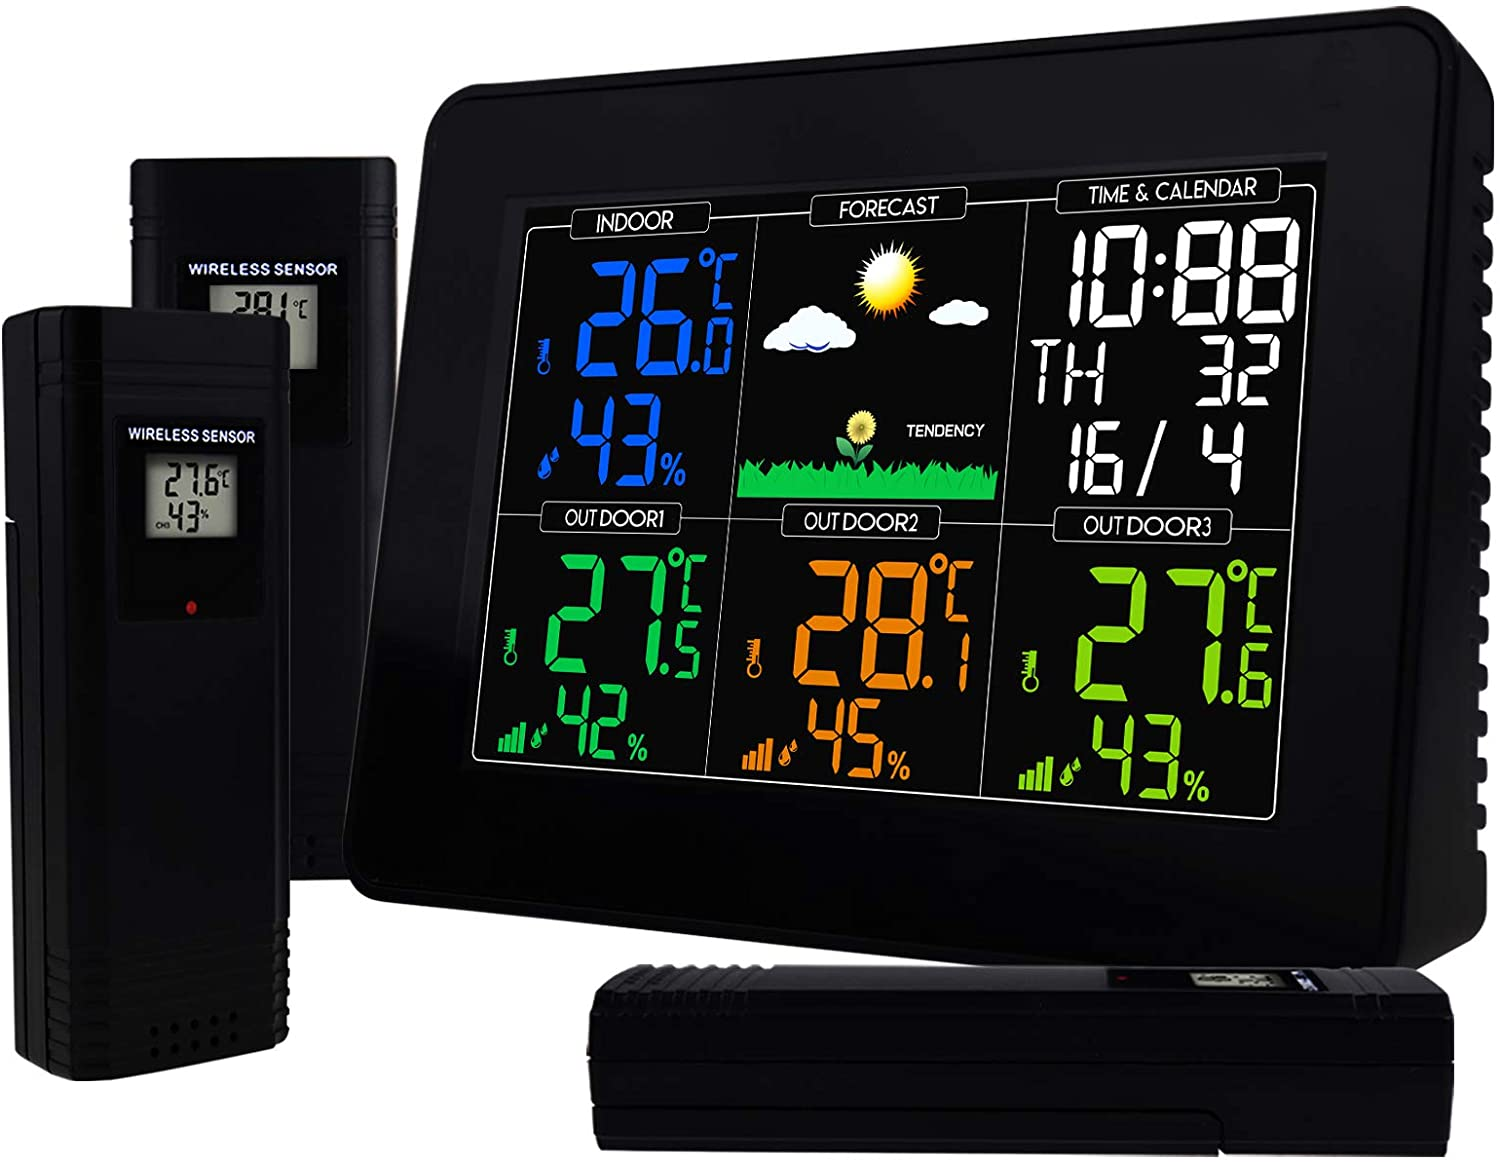 TEKCOPLUS Digital Color Display Wireless Weather Station with Three Remote Sensors 12/24 Hour Format Alarm & Snooze Function Sunny, Partly Cloudy, Cloudy, Rainy, Snowy Forecast